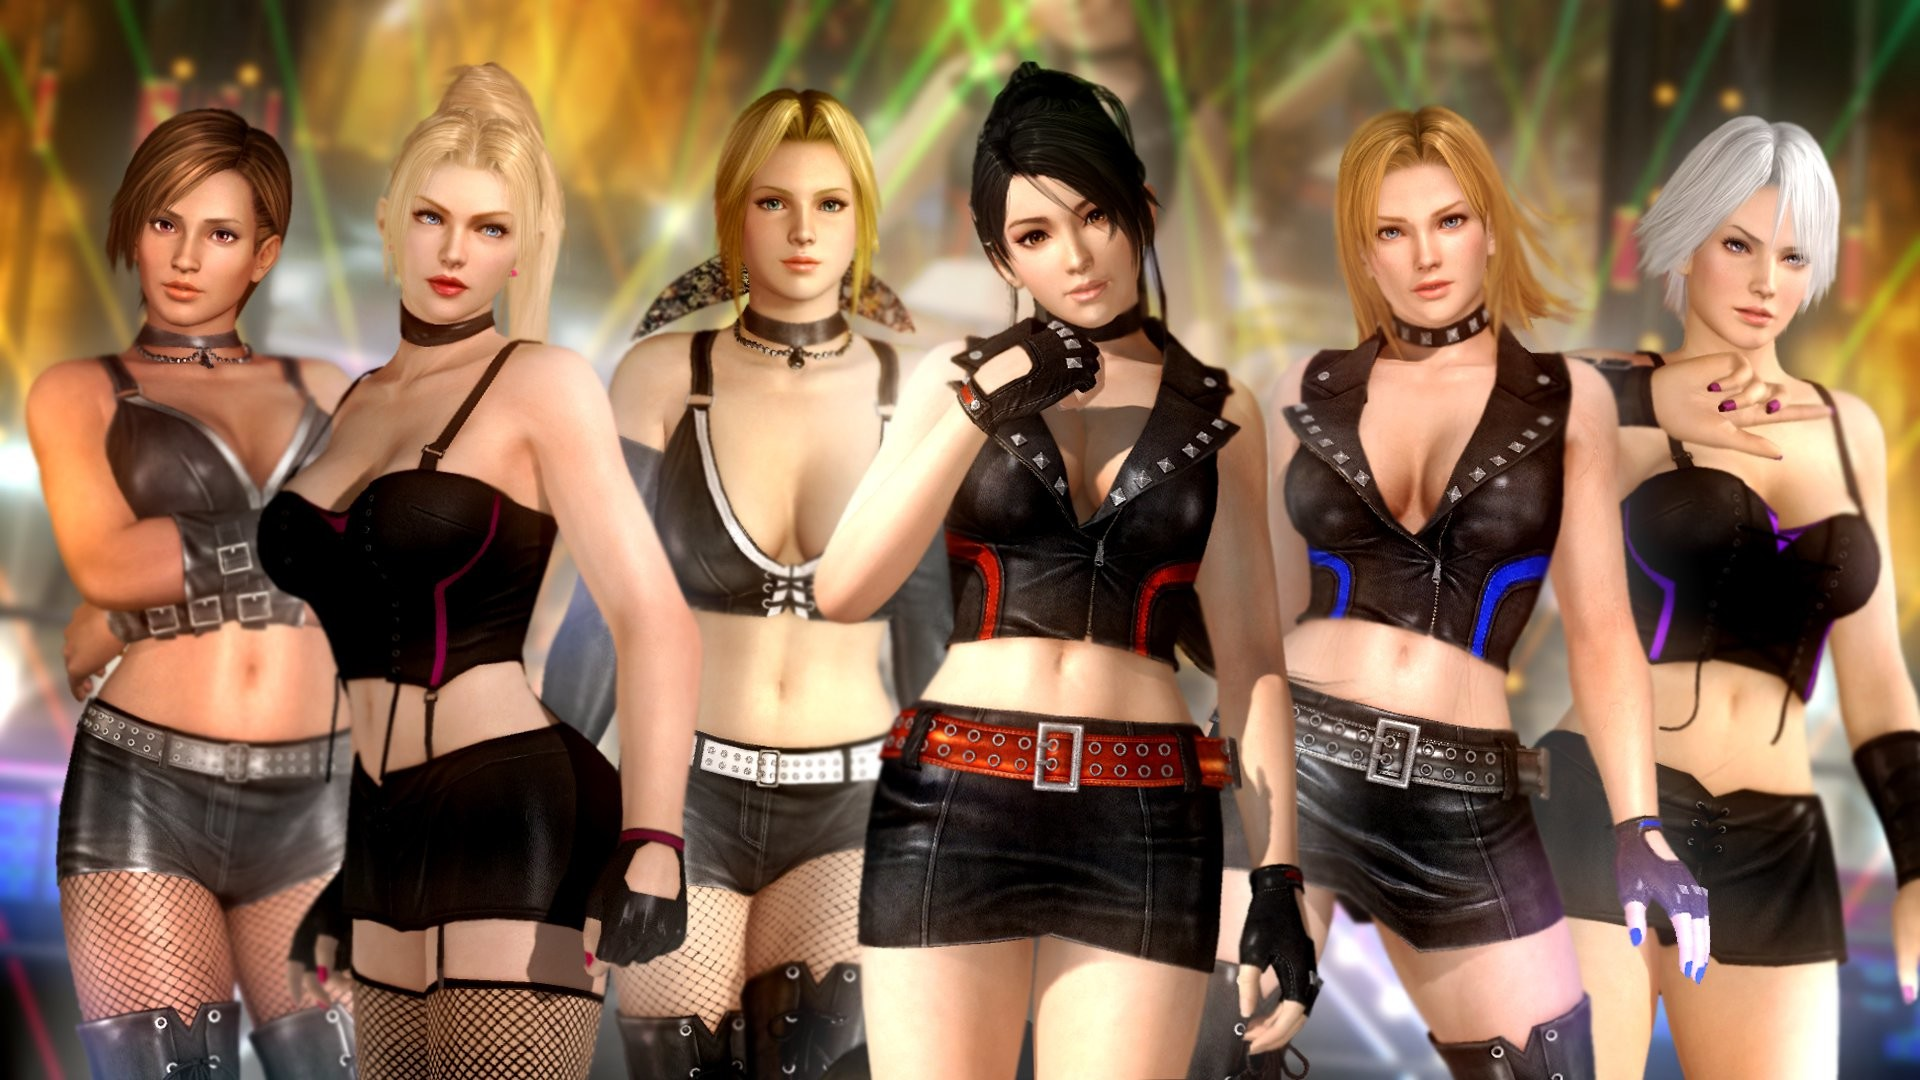 Dead or Alive 5 Group HD Wallpaper